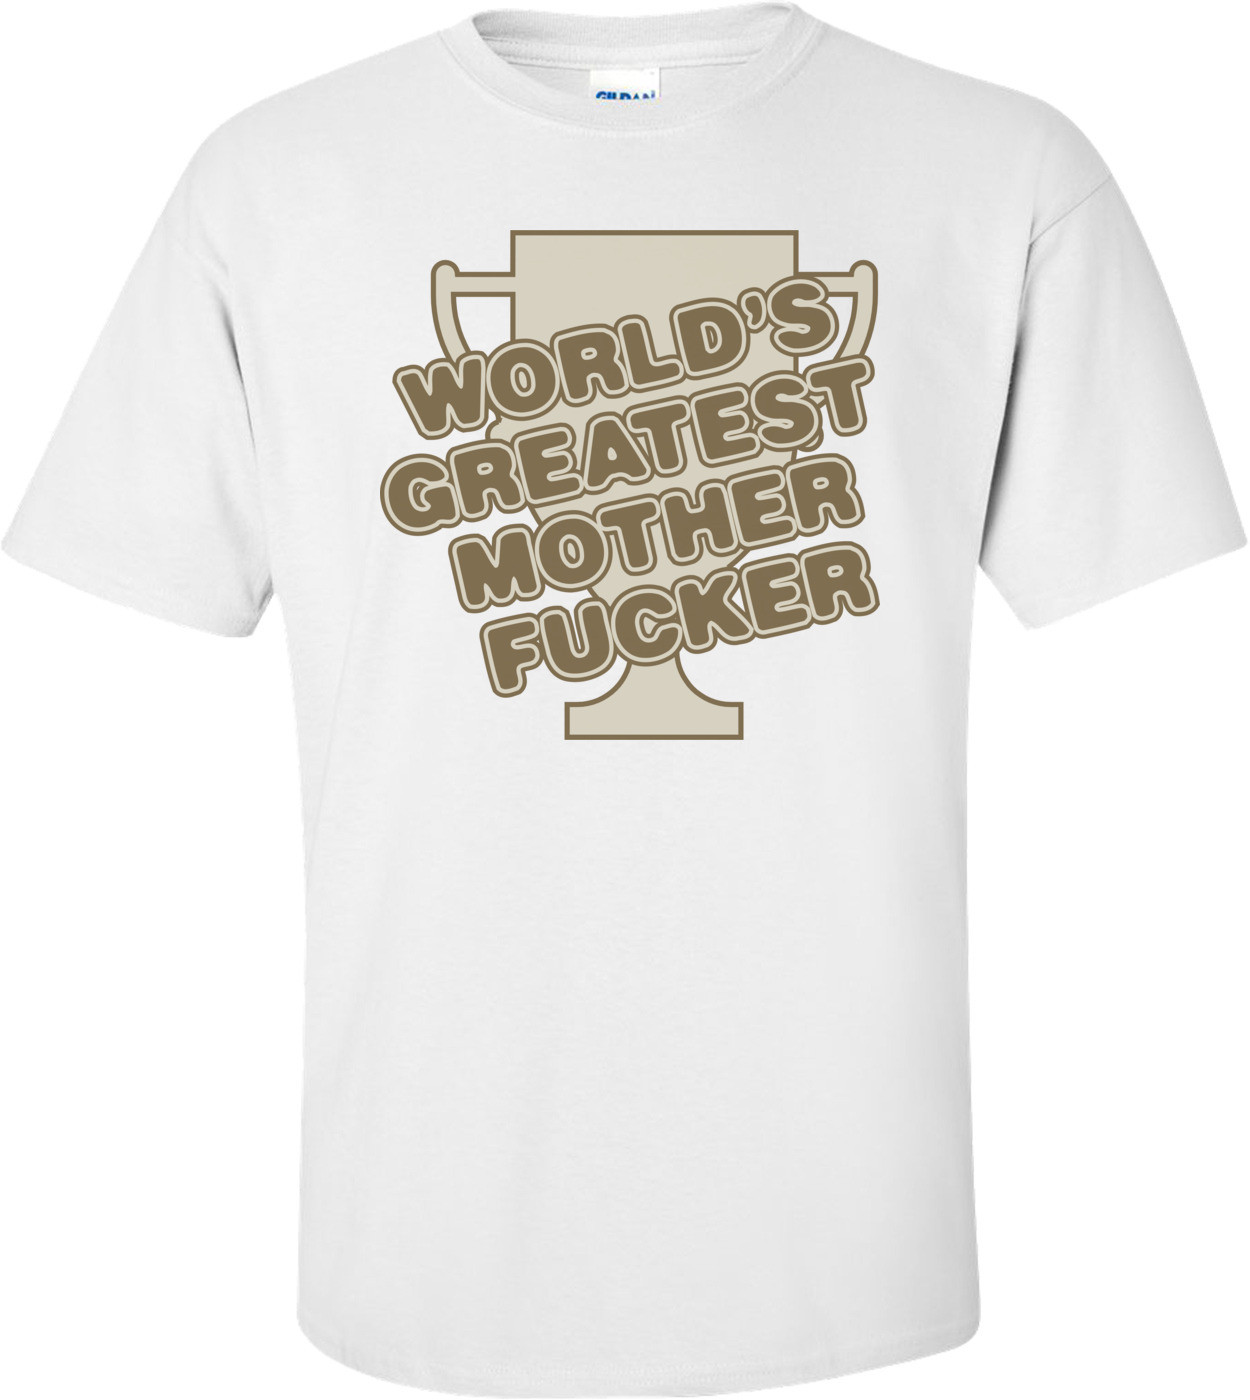 Worlds Greatest Mother Fucker T-shirt